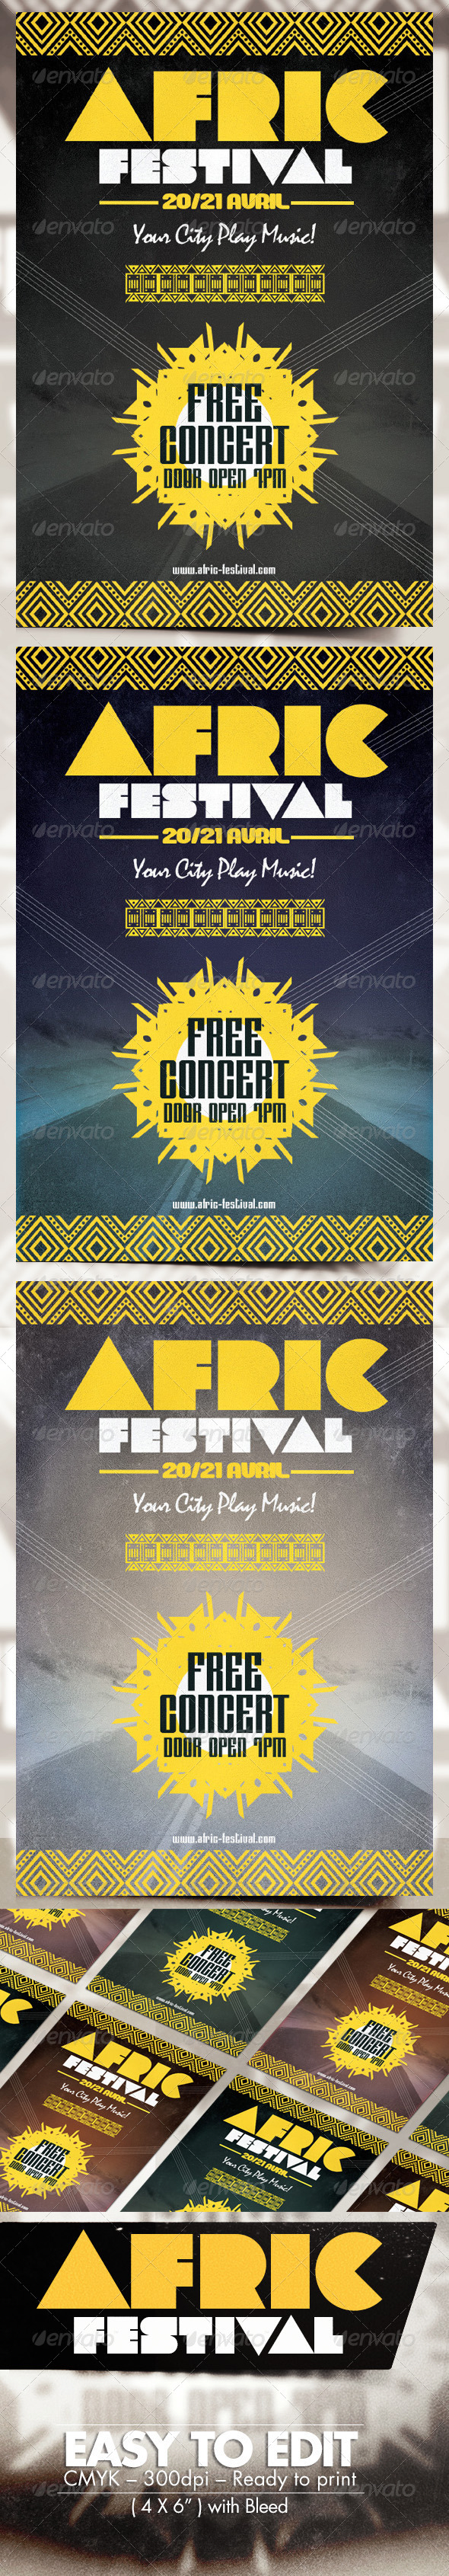 GraphicRiver Africa Festival Flyer 8273495